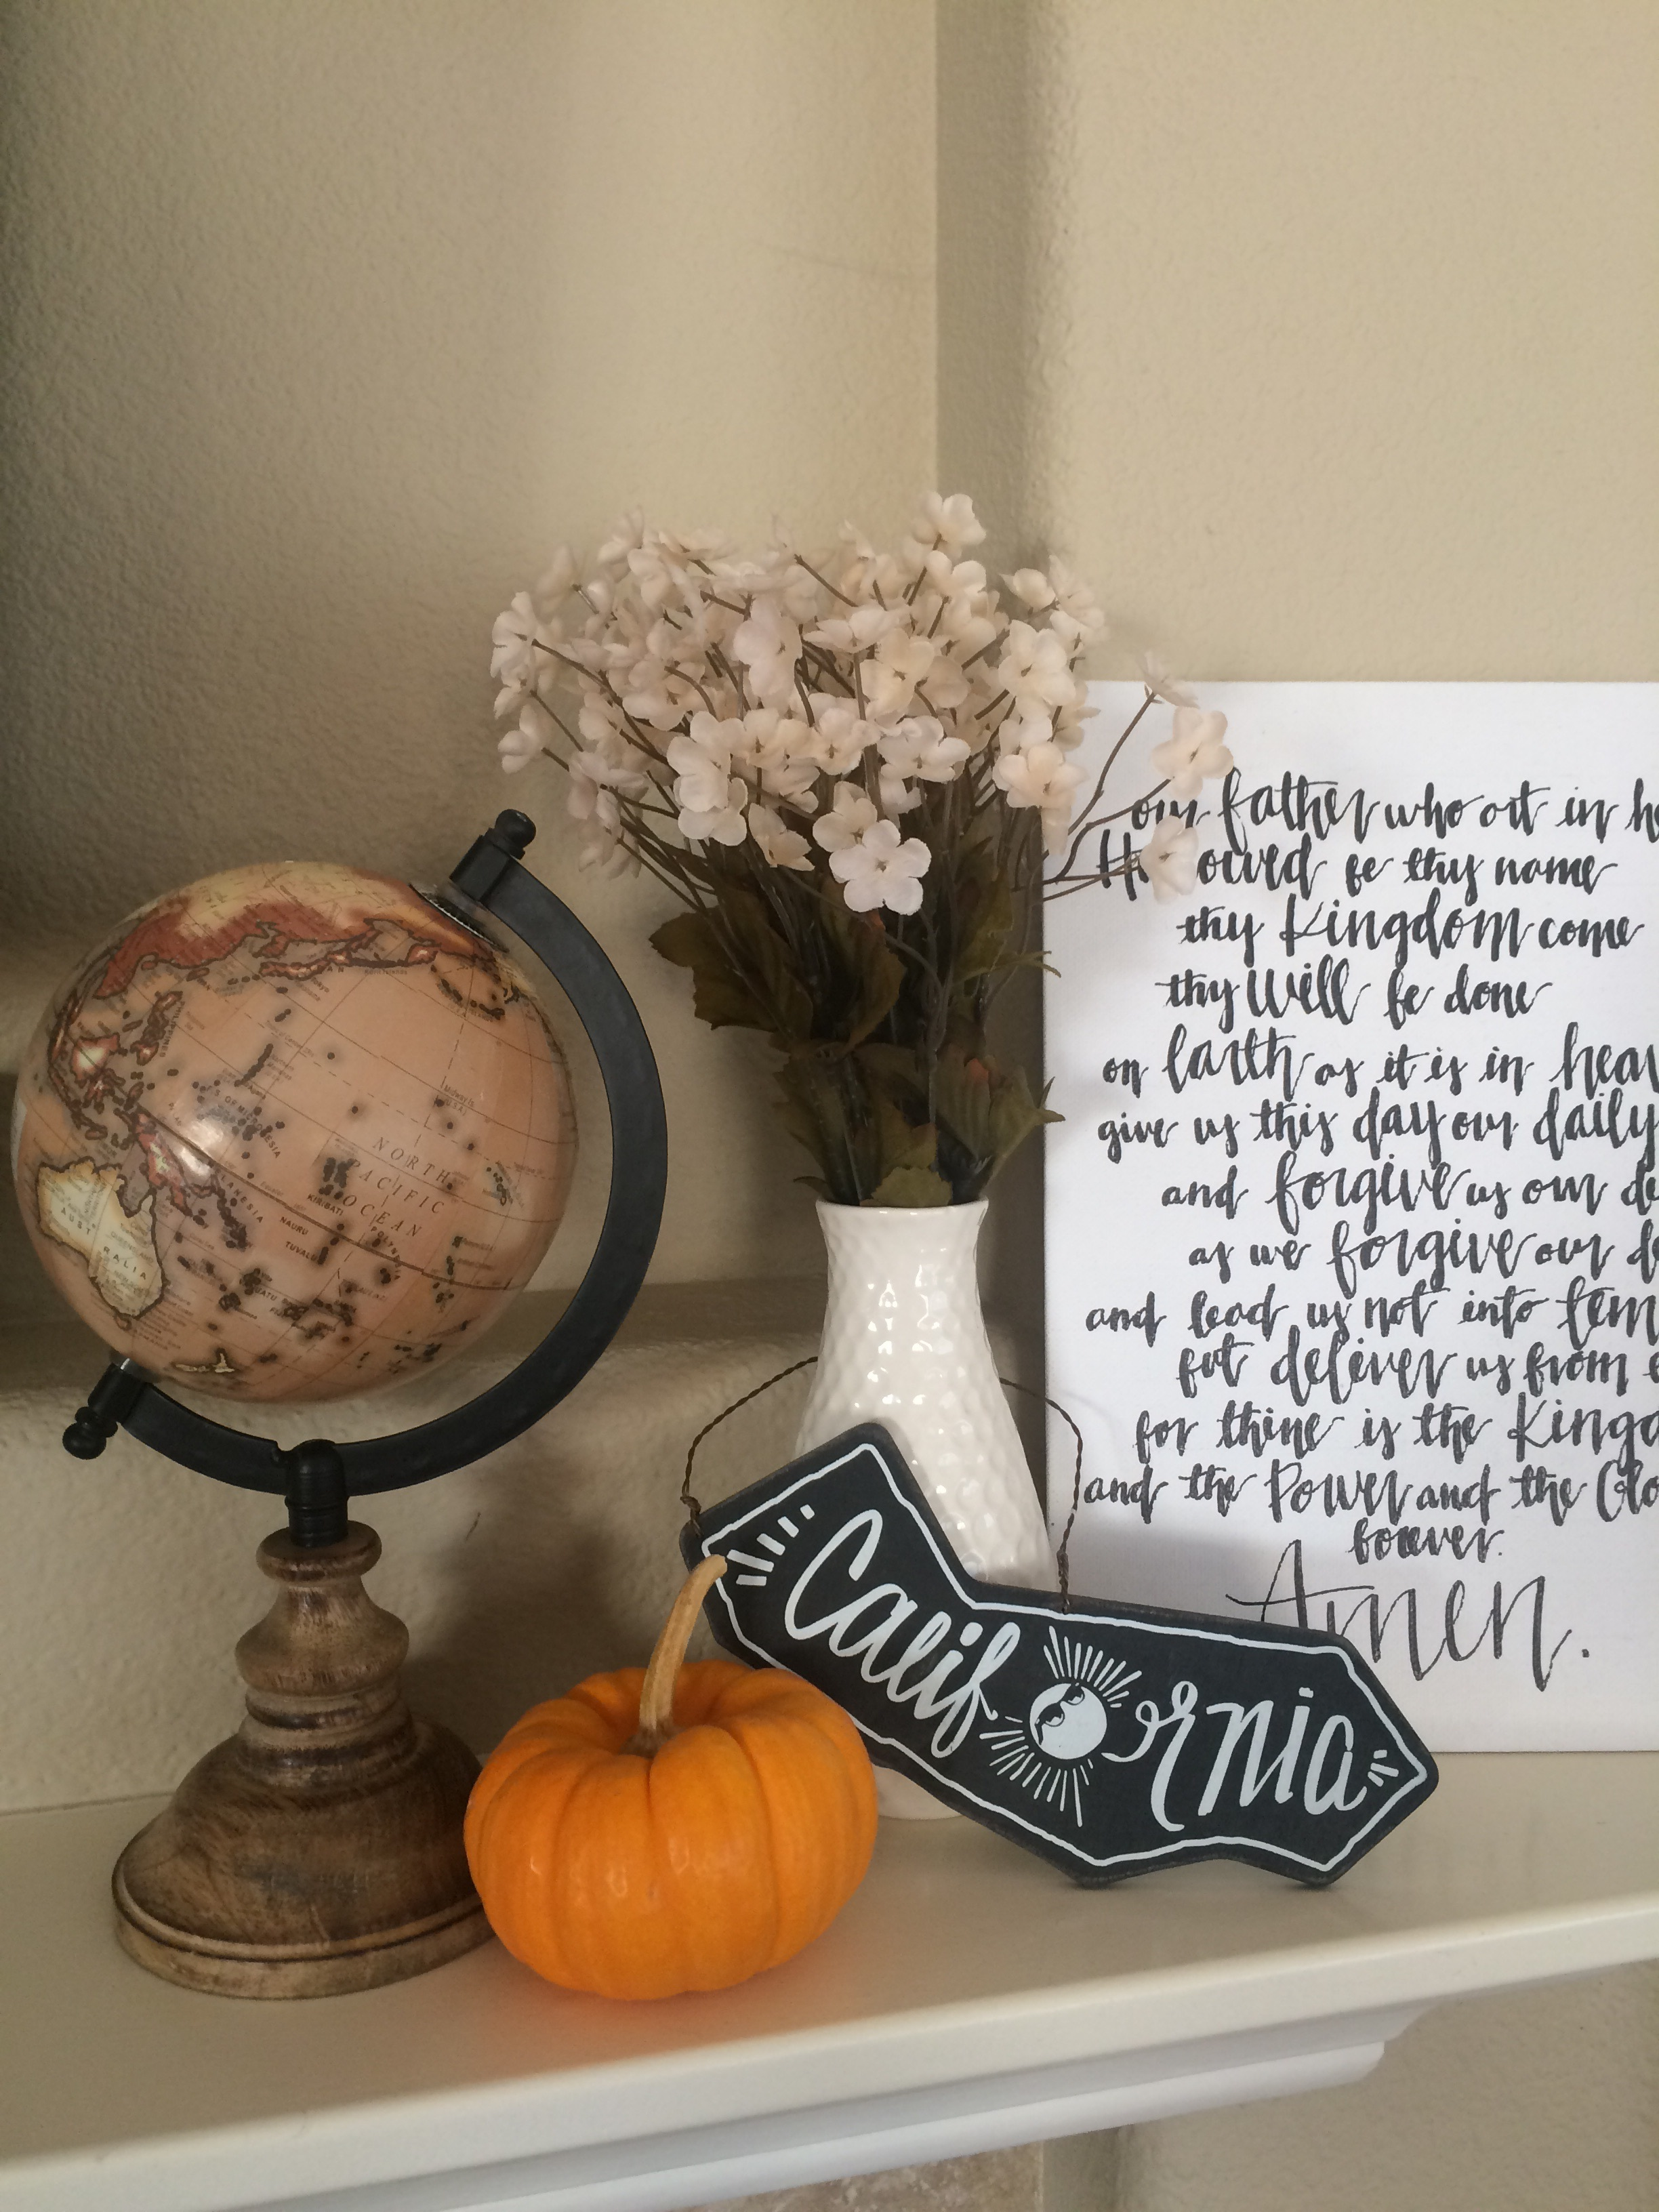 Some fall decor is making an appearance at our house.